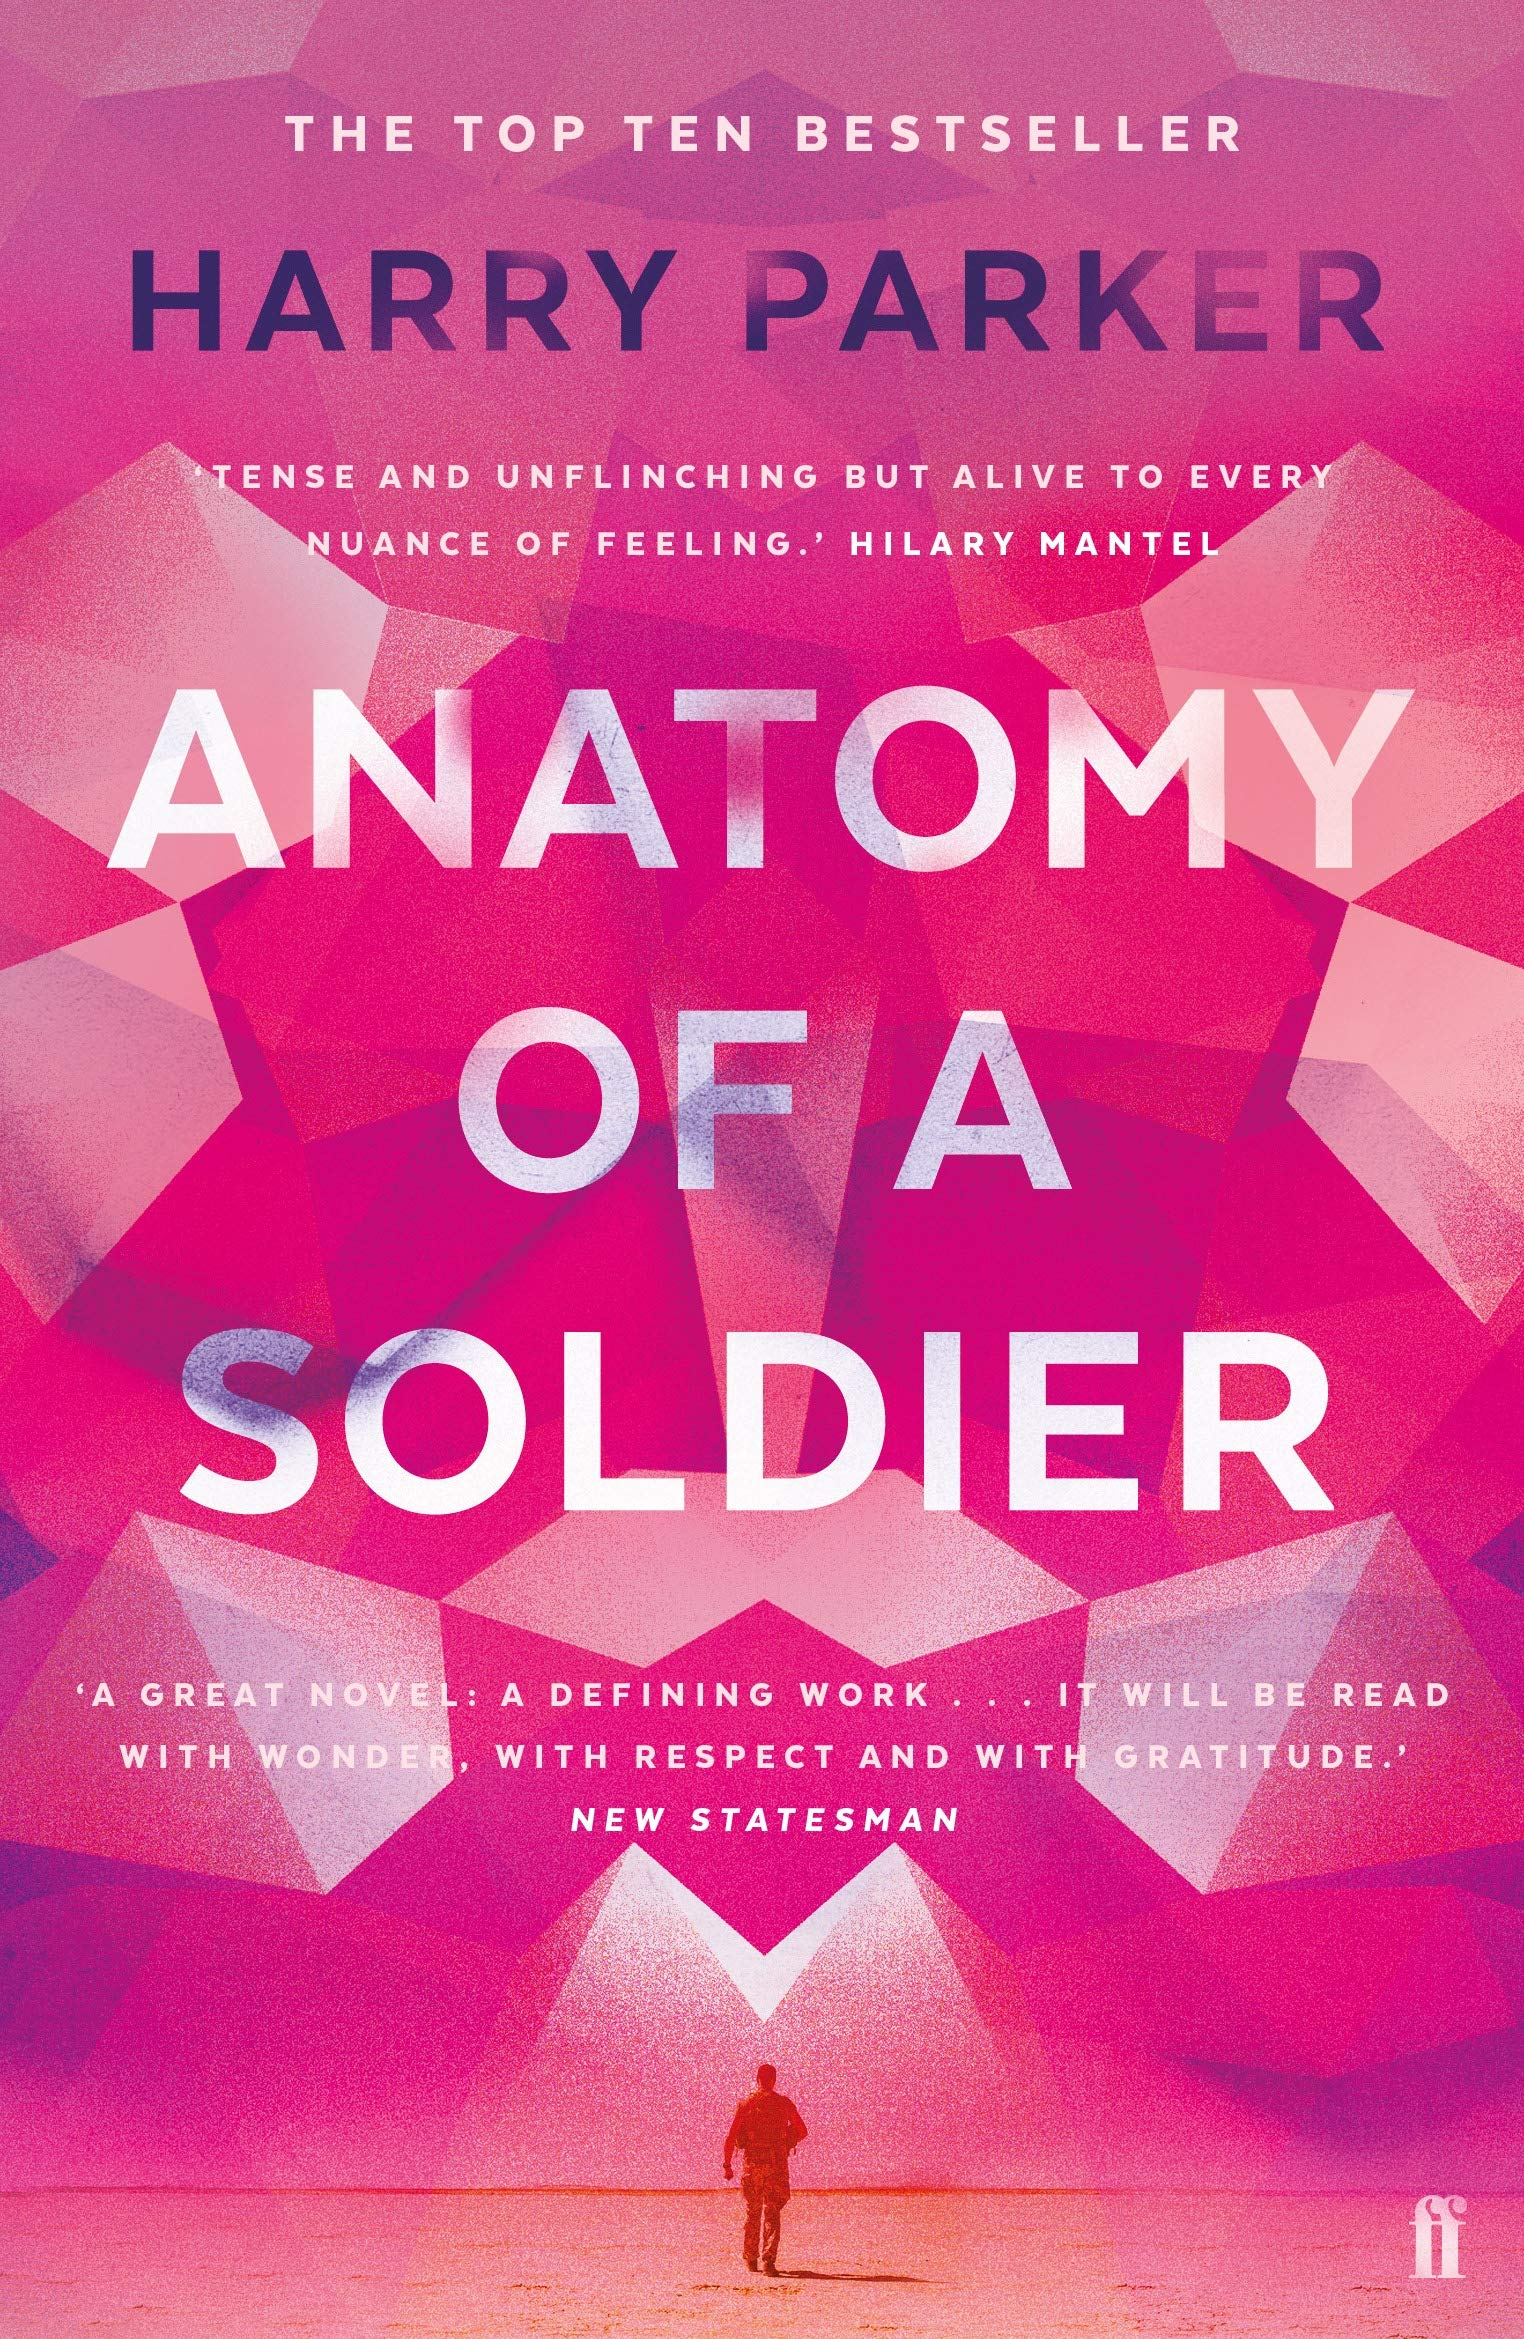 Anatomy of a Soldier: Harry Parker: 9780571325832: Books - Amazon.ca